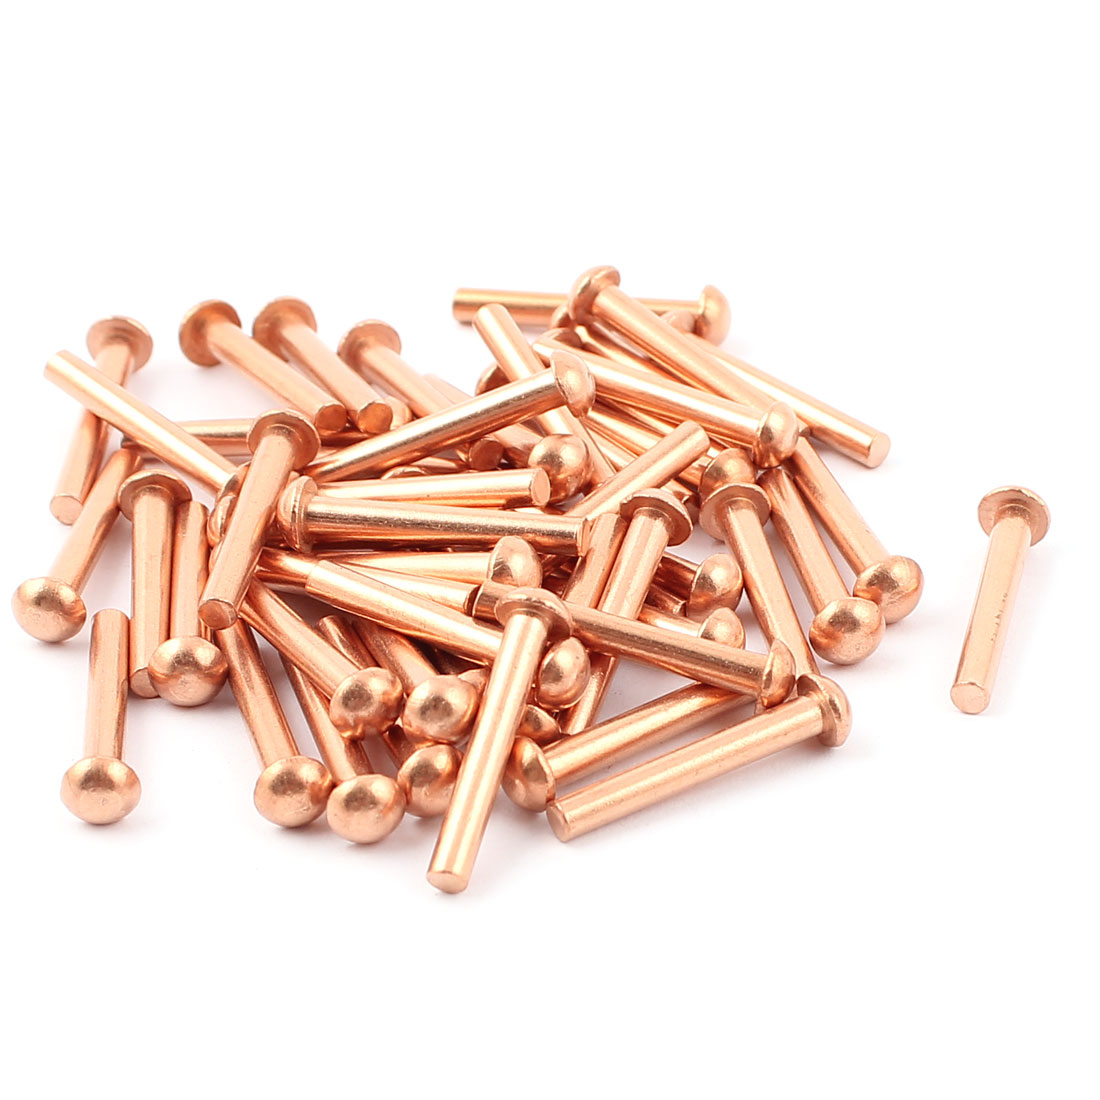 "50 Pcs 1/8"" x 25/32"" Round Head Copper Solid Rivets Fasteners"